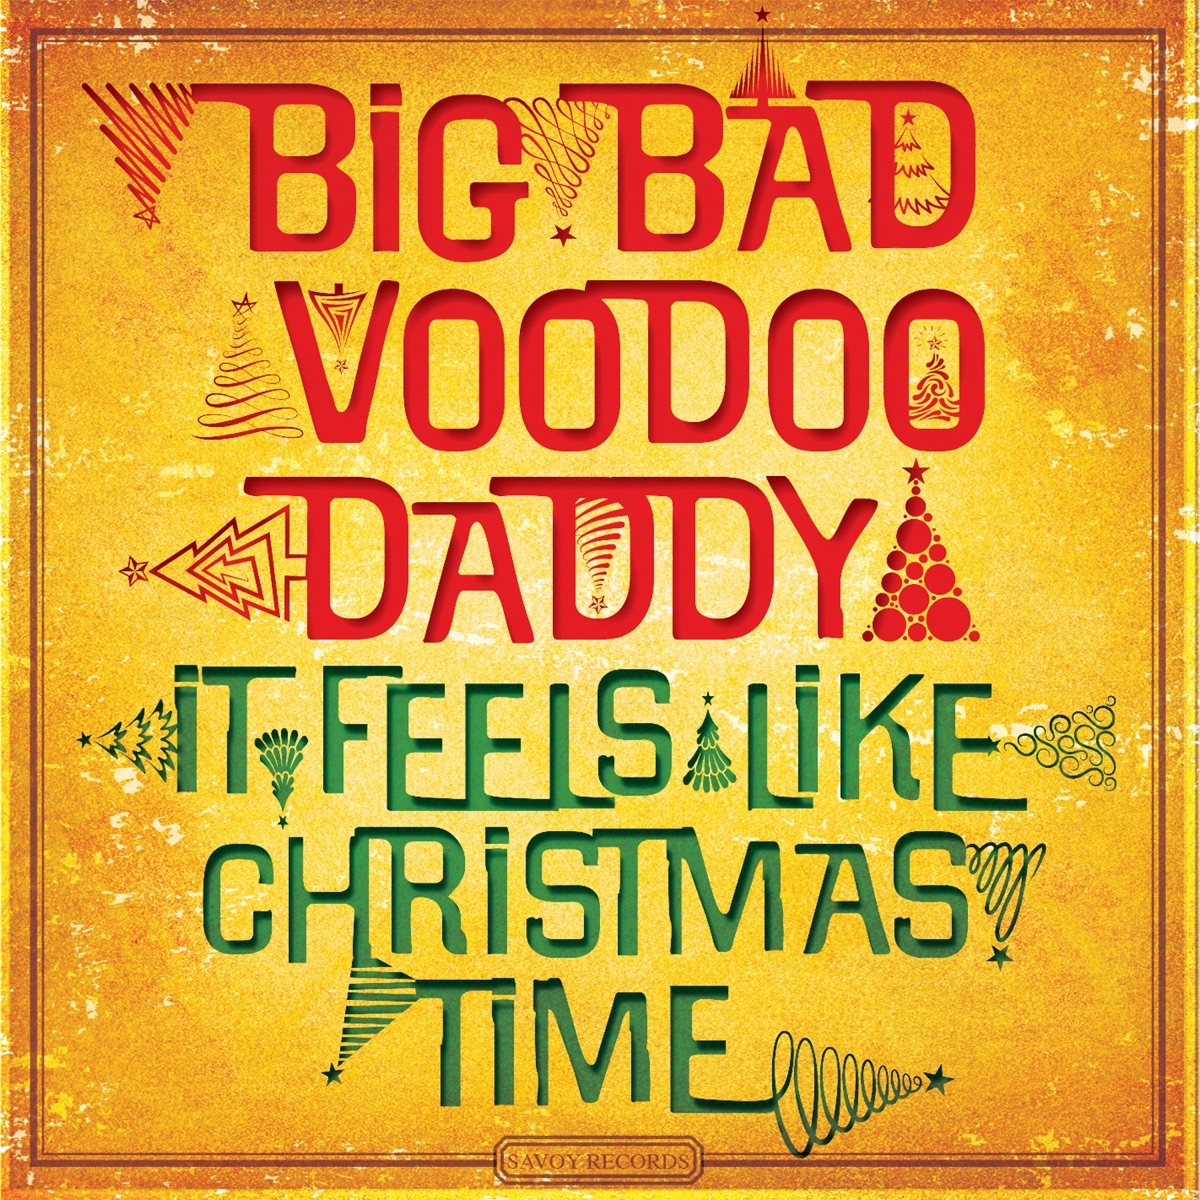 It Feels Like Christmas Time Album Cover By Big Bad Voodoo Daddy